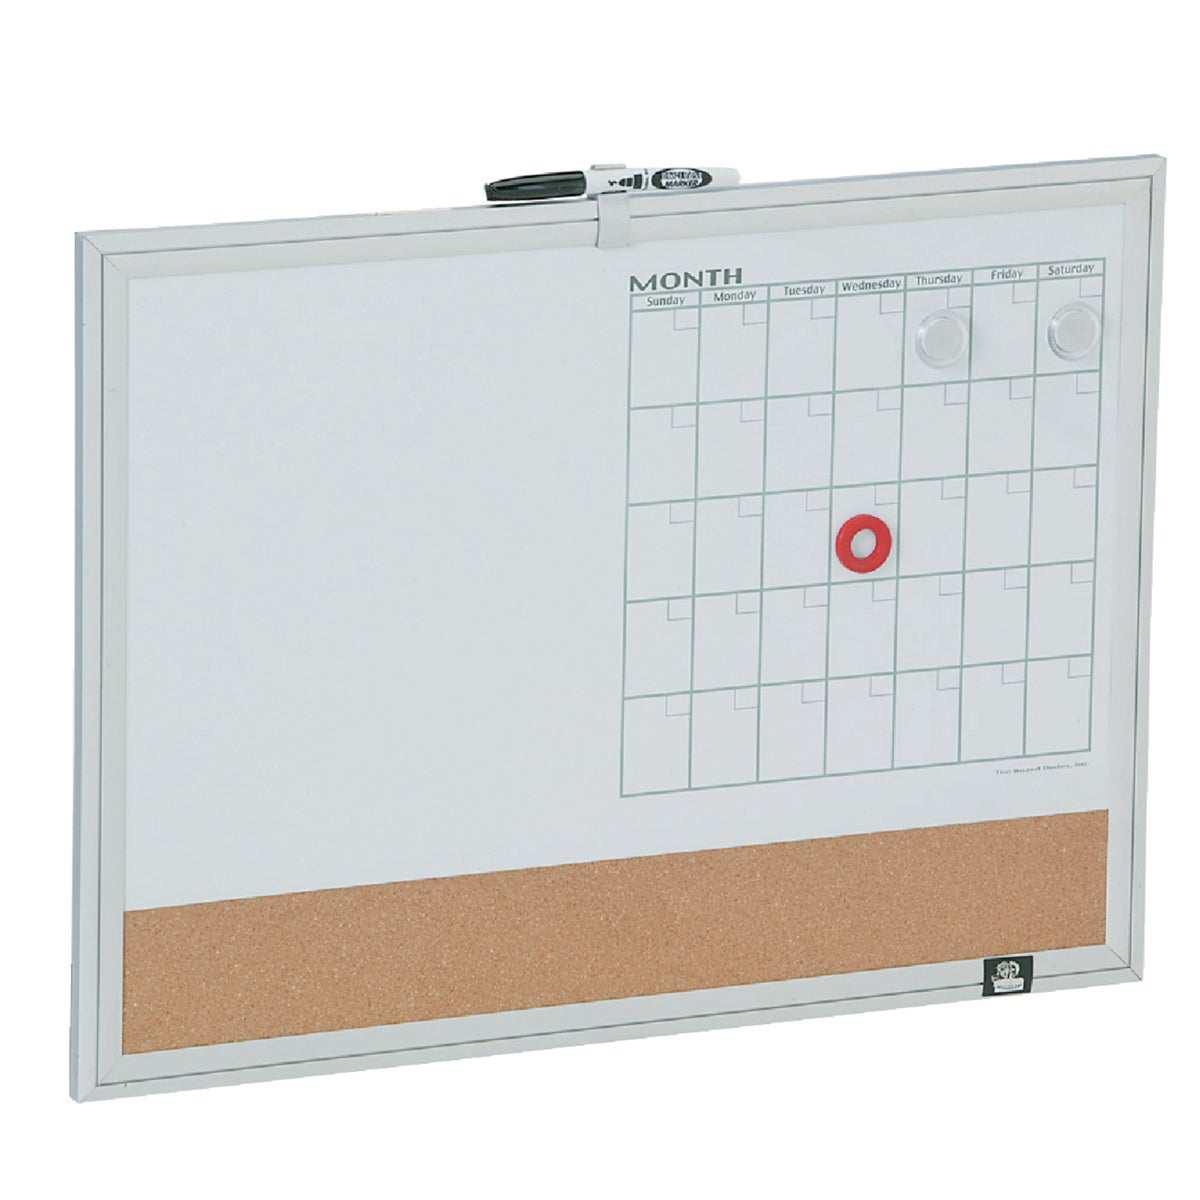 17X23 MAGNETIC BOARD - 79293 by Board Dudes Inc